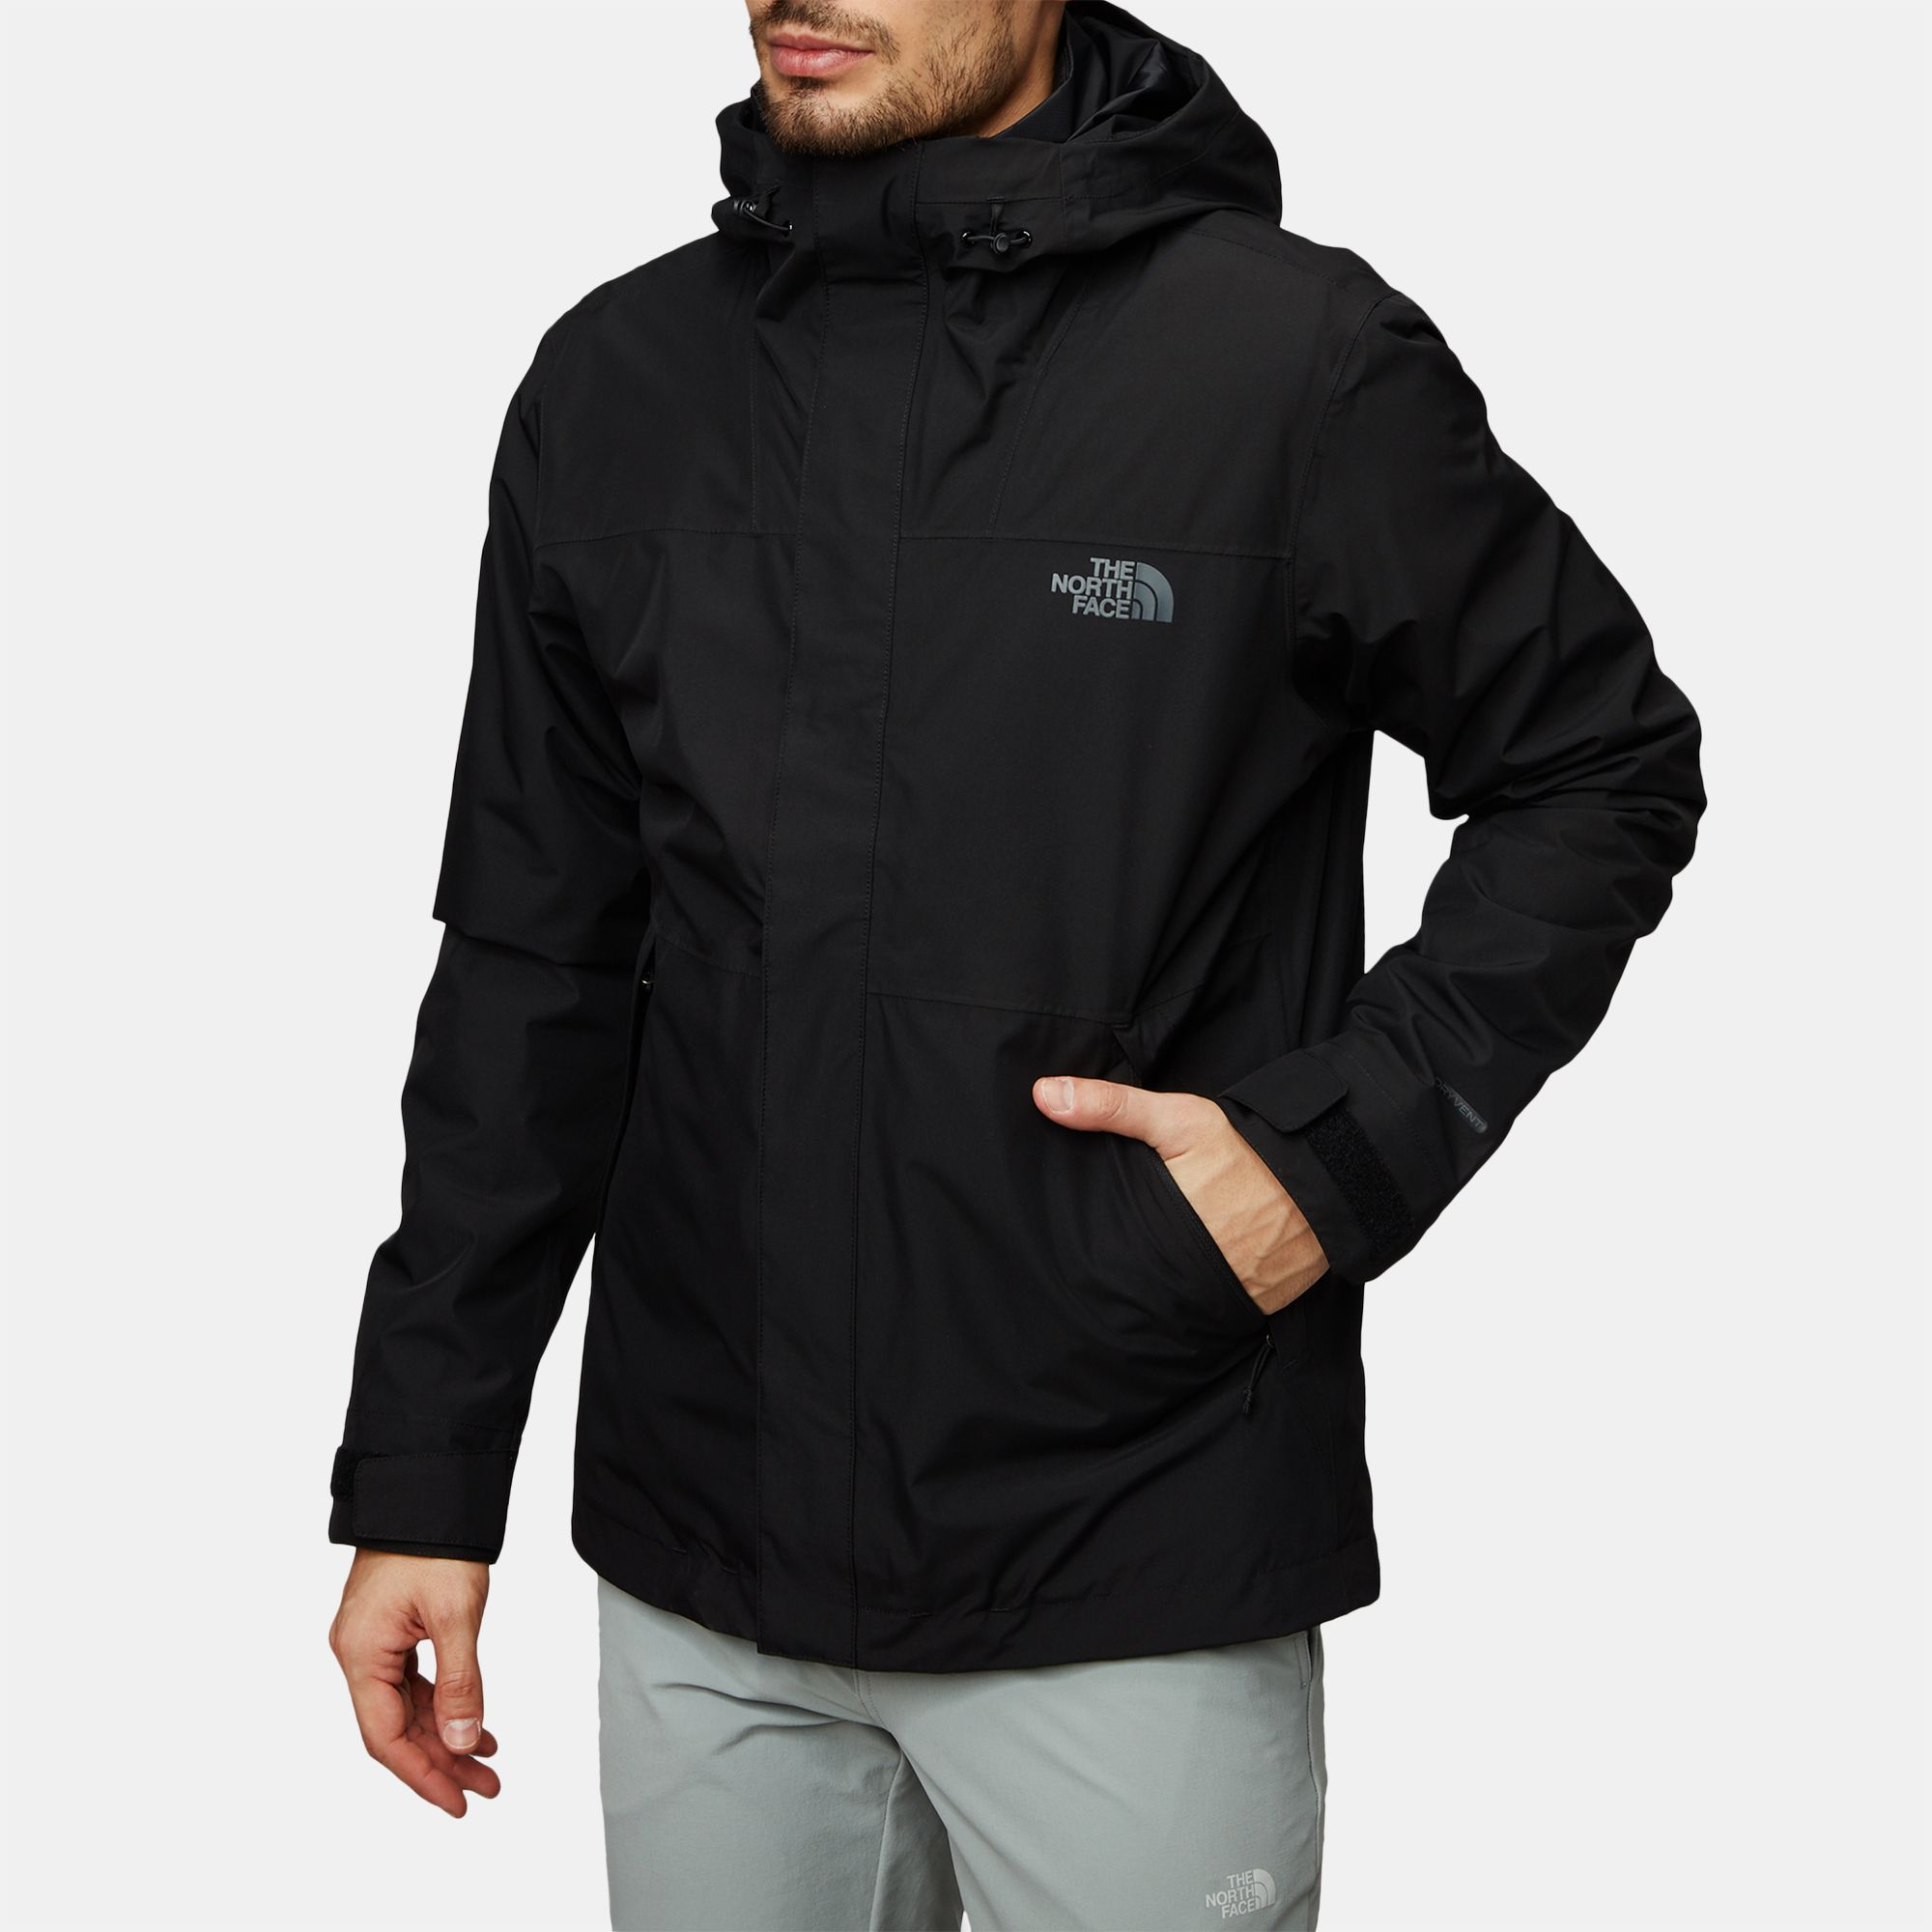 51f9f7eeaa Shop Black The North Face Naslund Triclimate Jacket for Mens by The ...